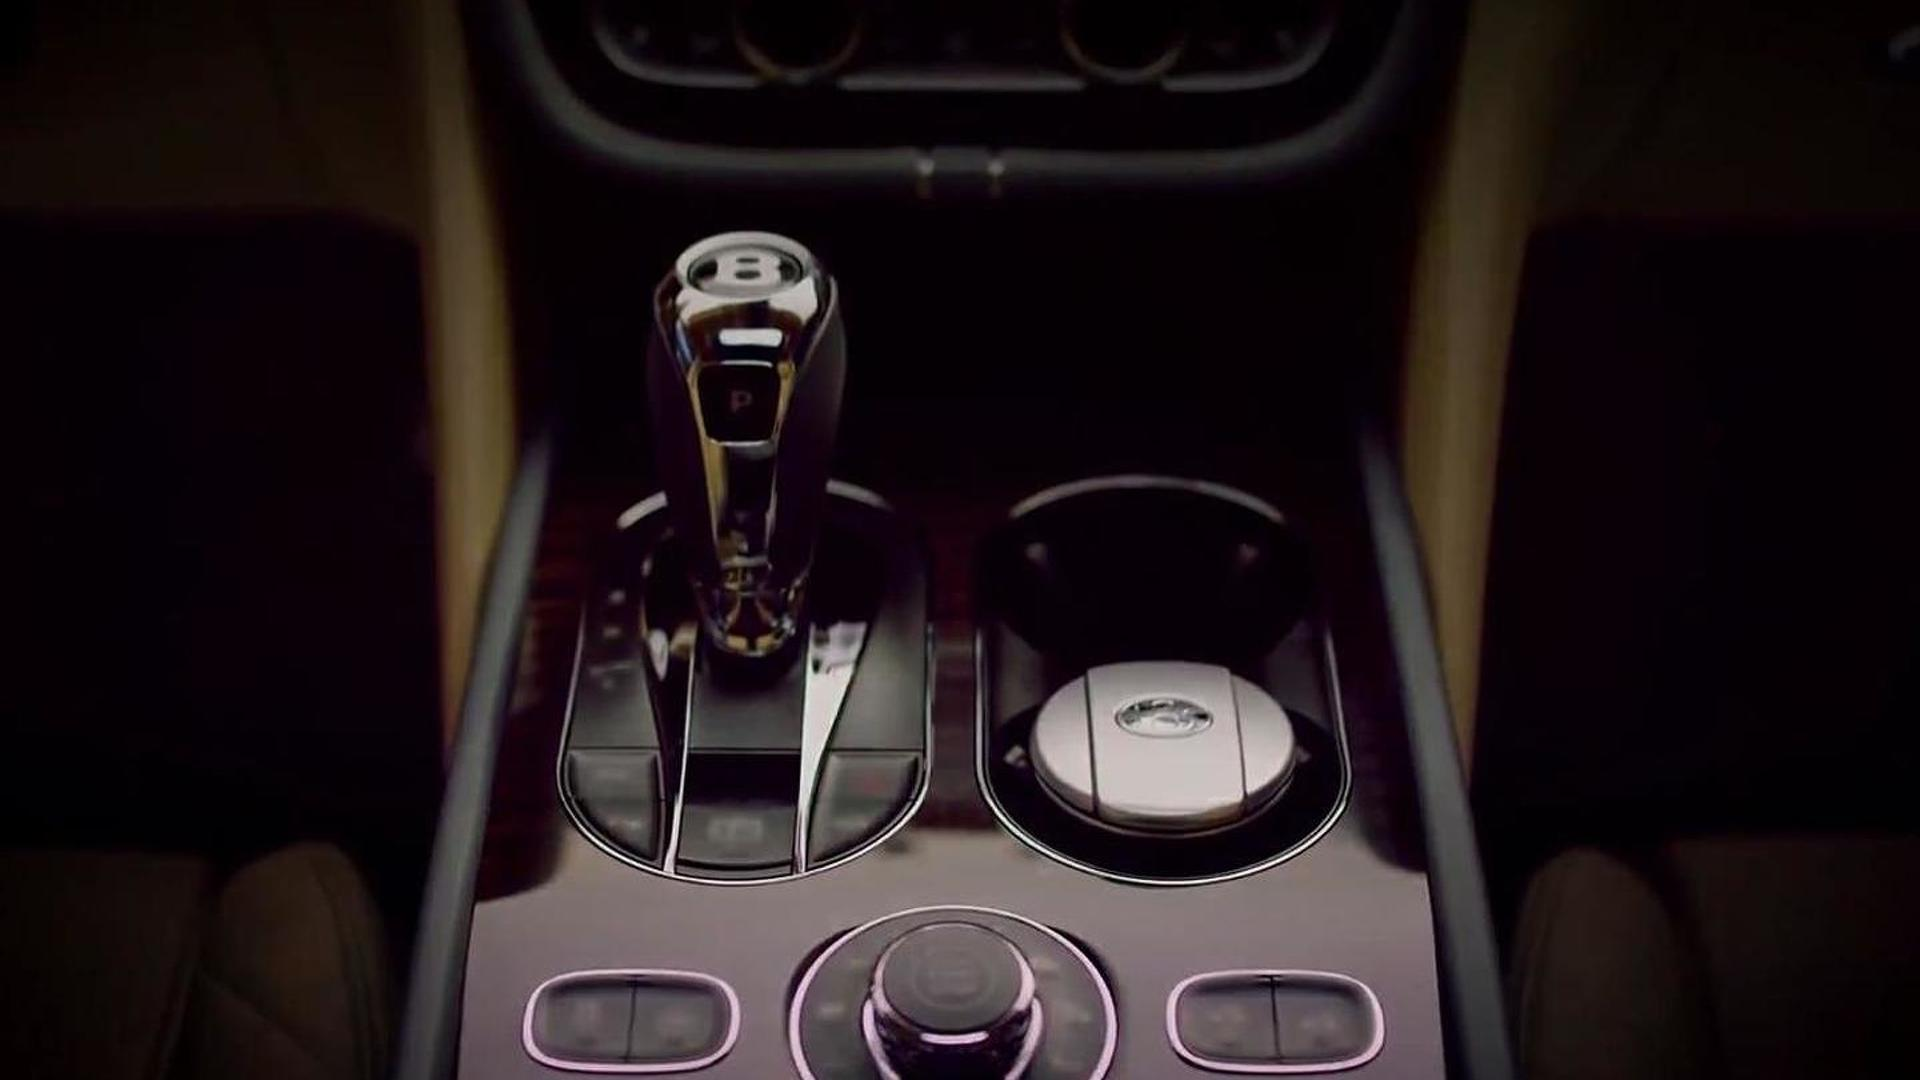 Bentley Bentayga interior cabin partially revealed in latest teaser video